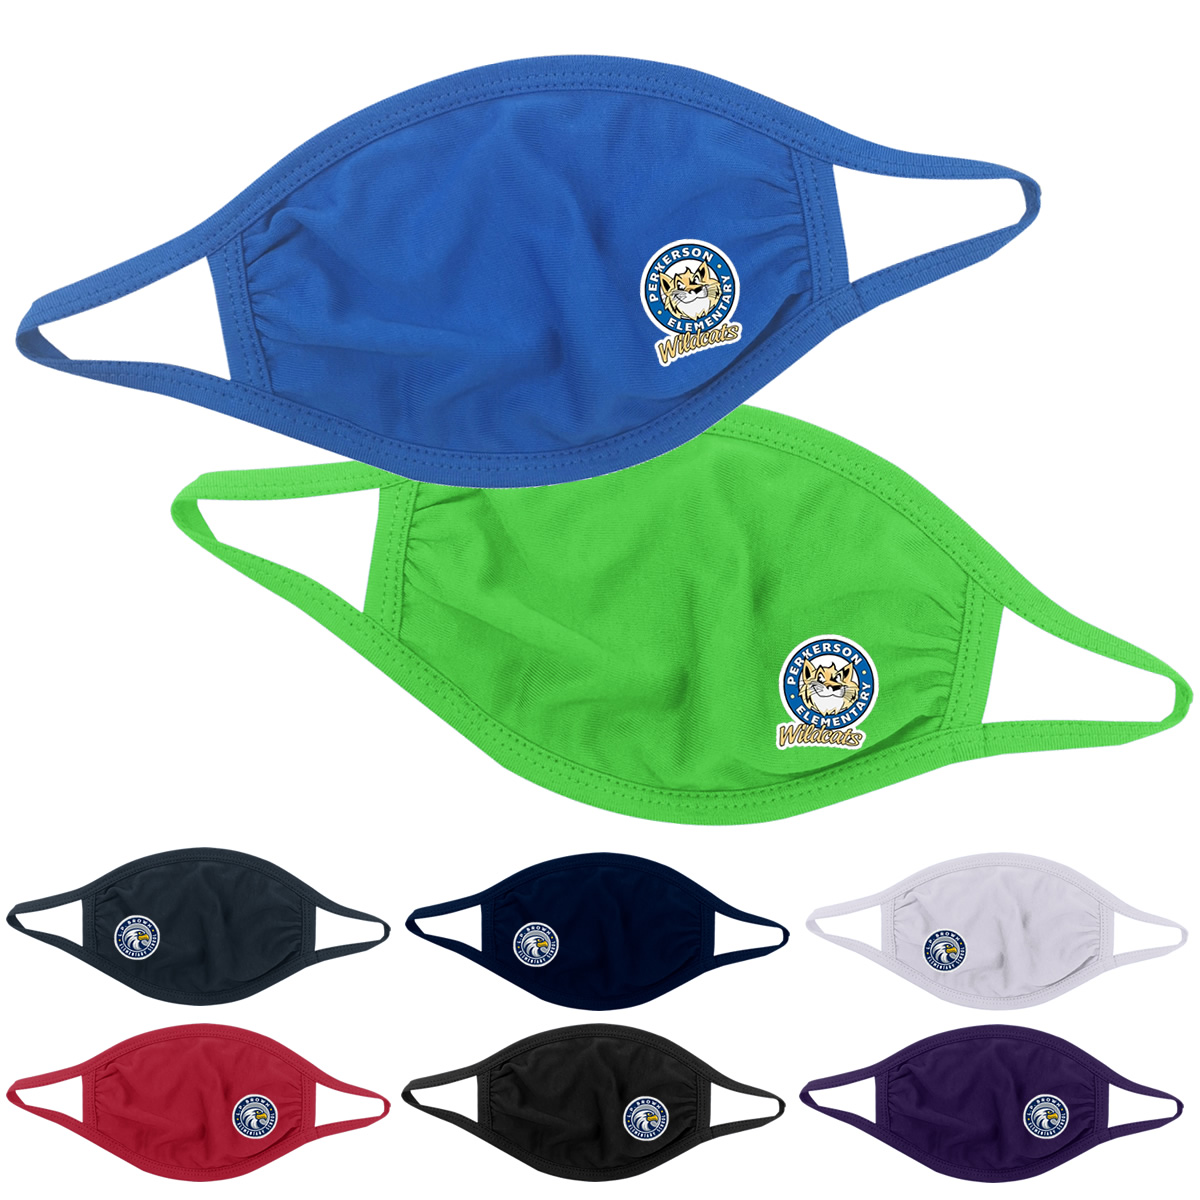 Promotional Youth Cotton Reusable Face Mask Full Color